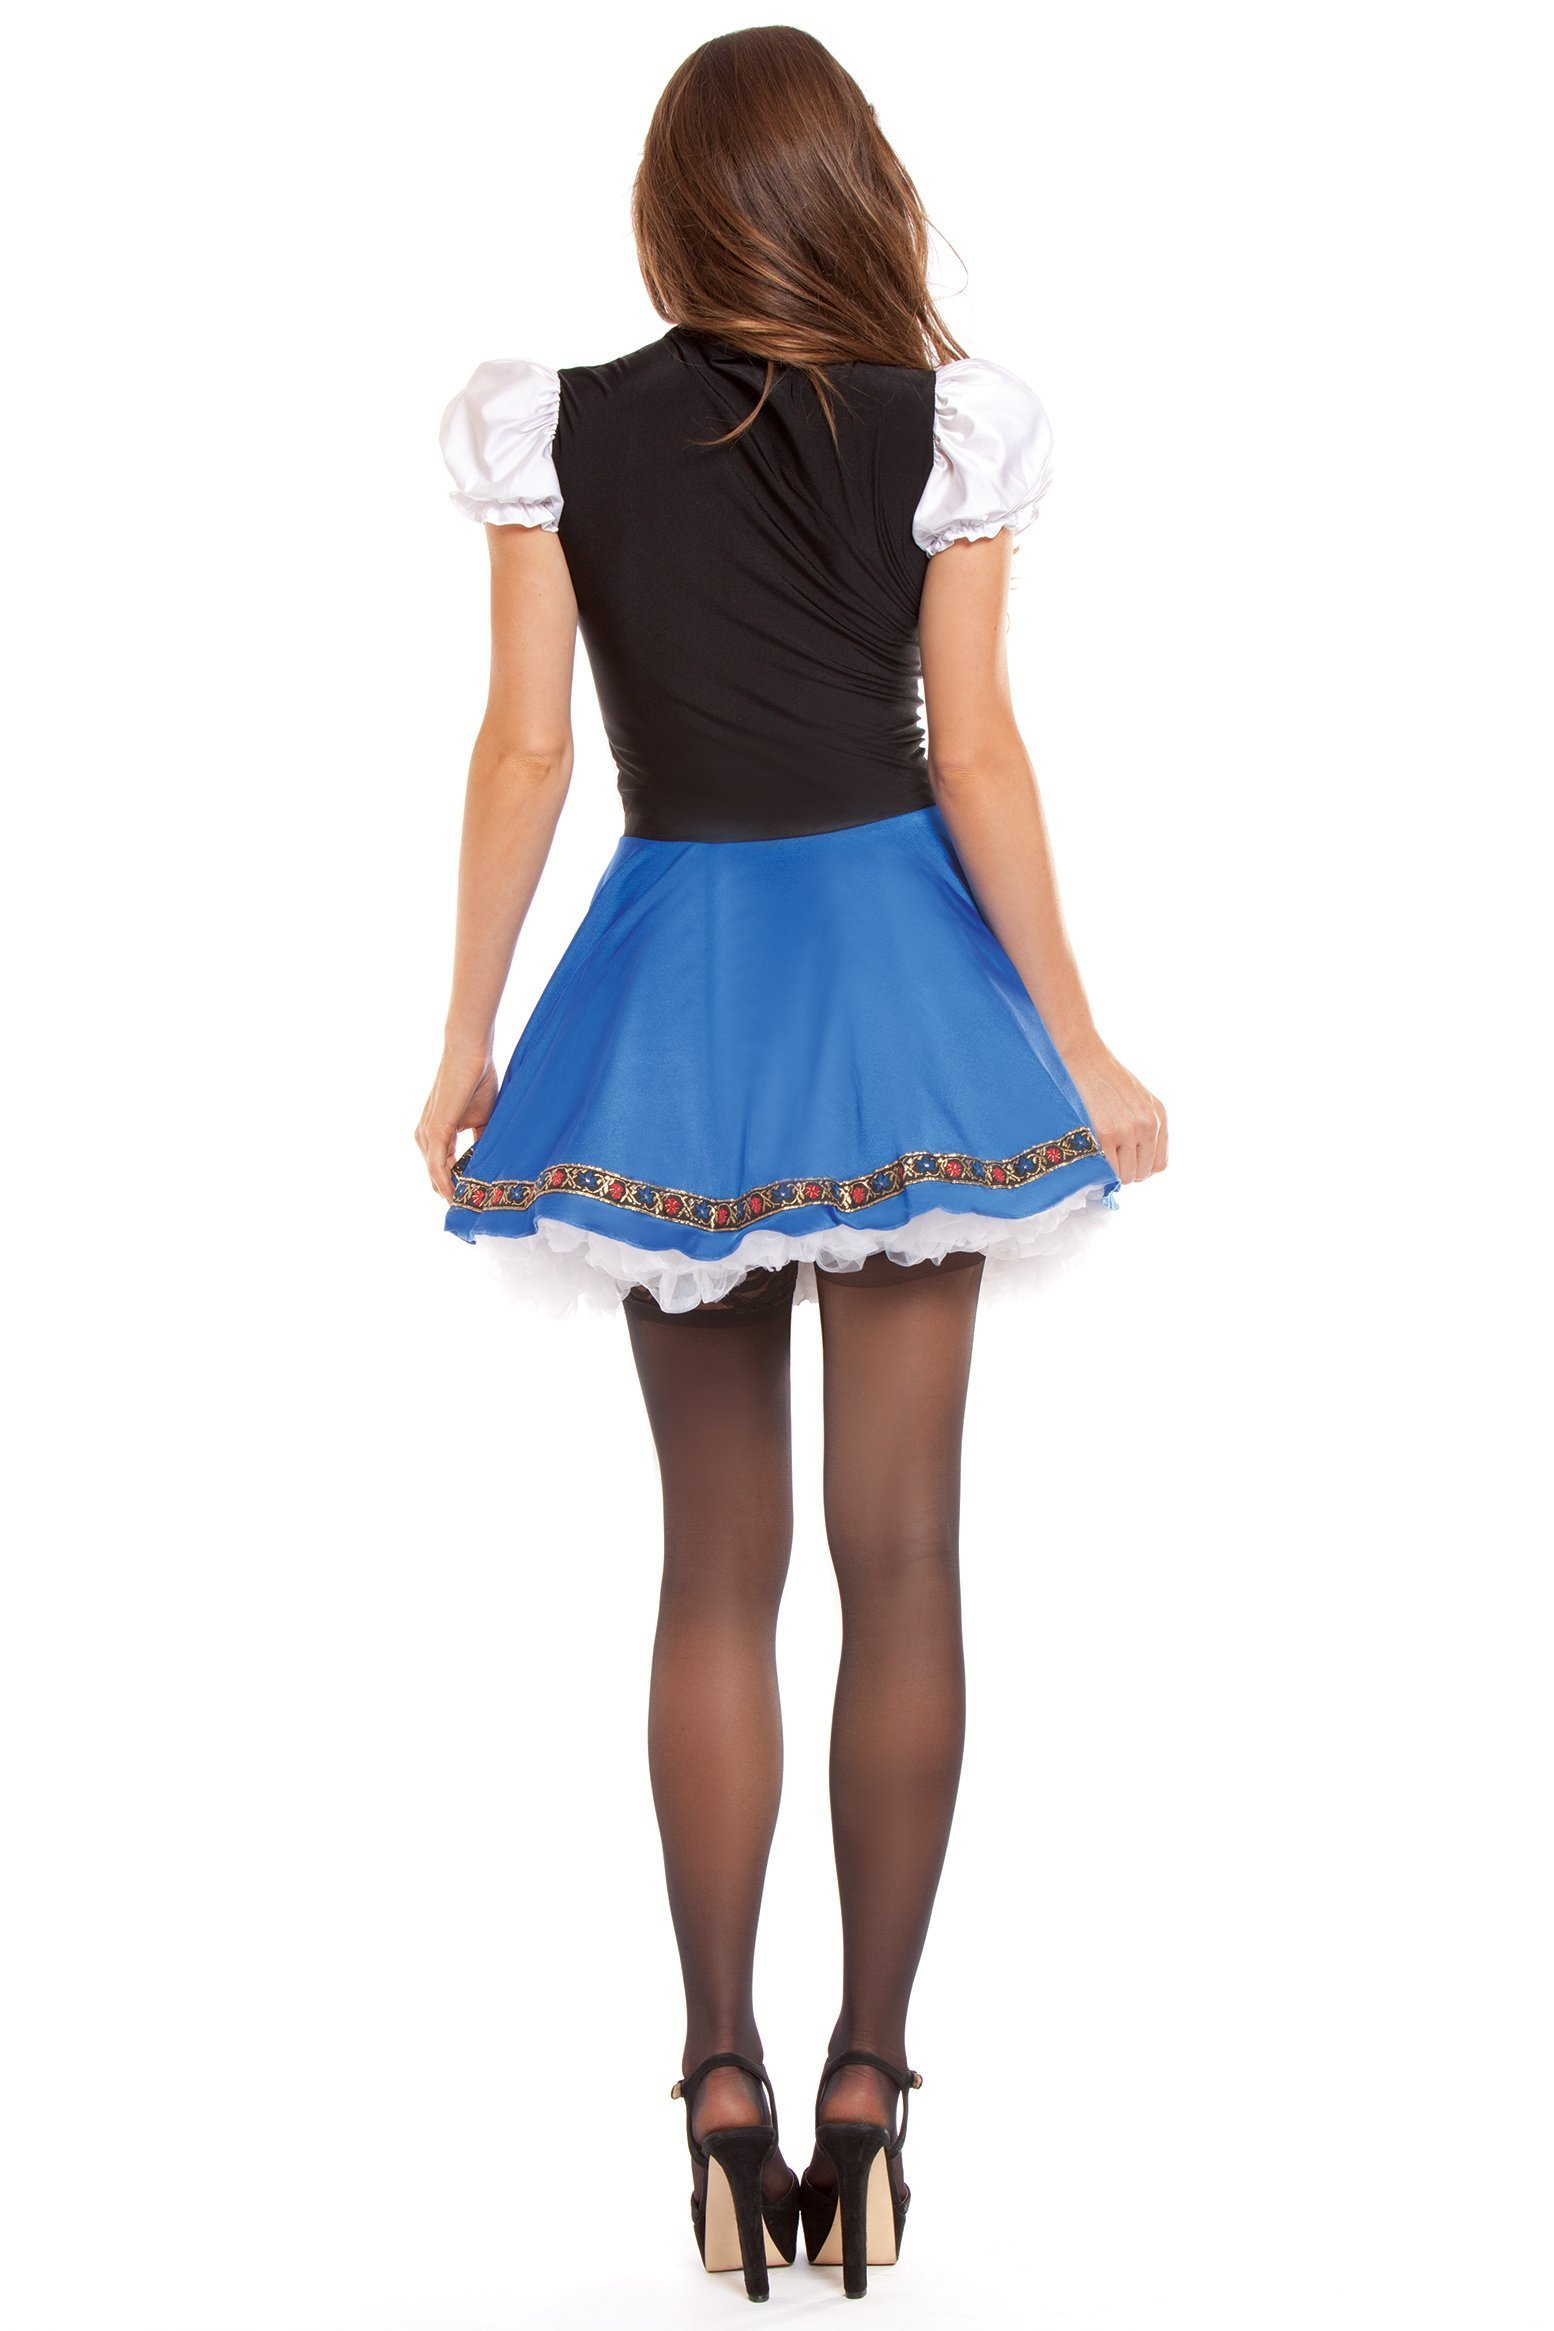 Best Wholesale S*Xy Bedroom Costumes Be Wicked S*Xy W*Nch Dress With Pictures